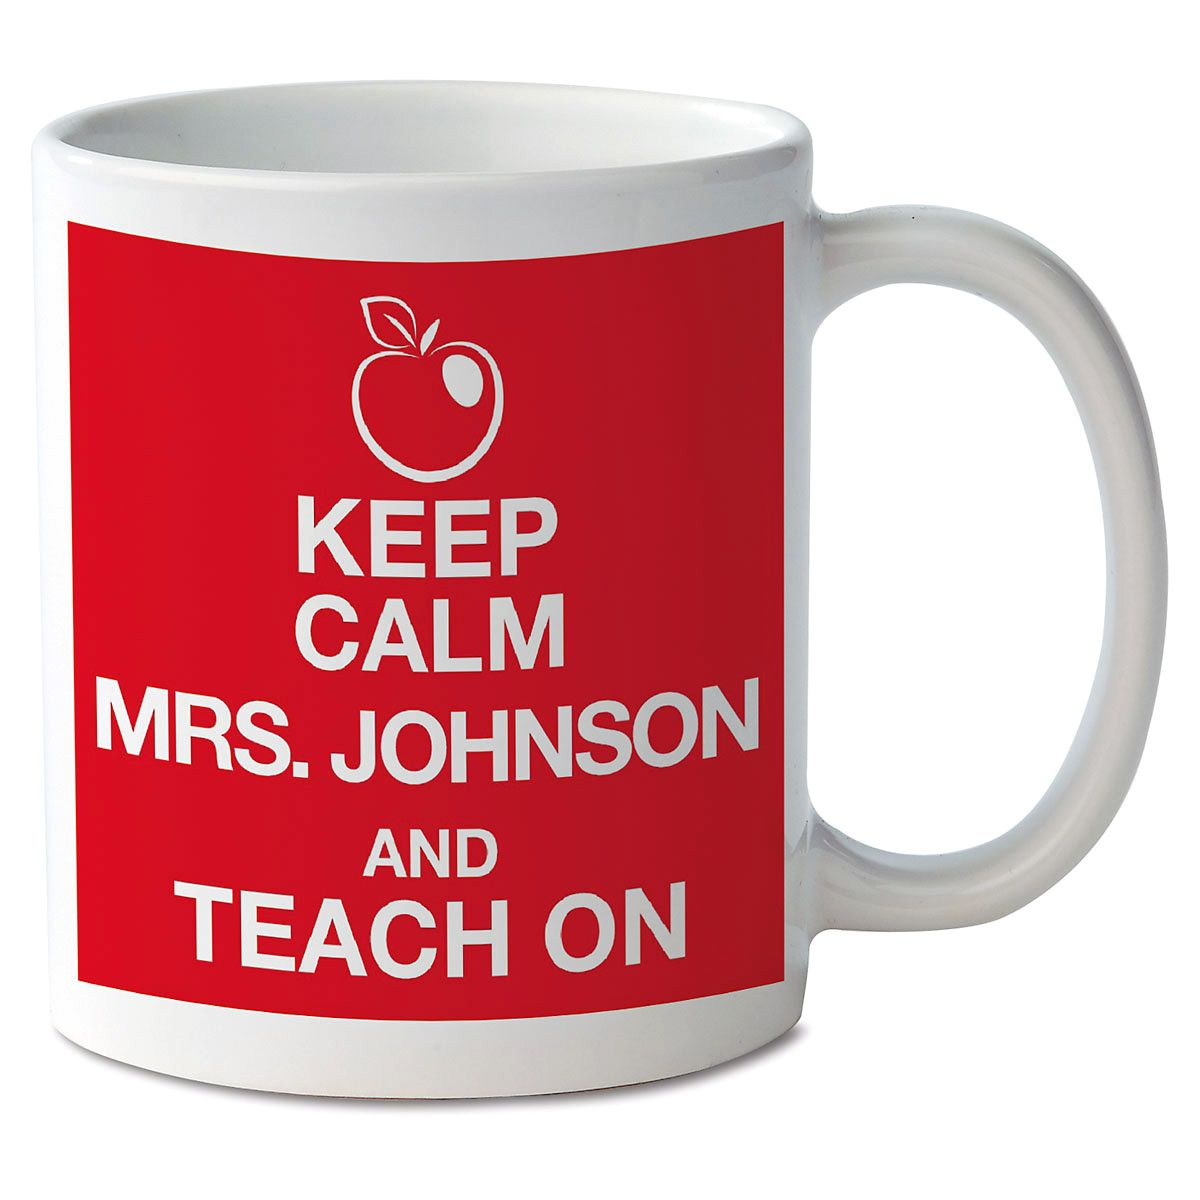 Keep Calm and Teach On Personalized Mug